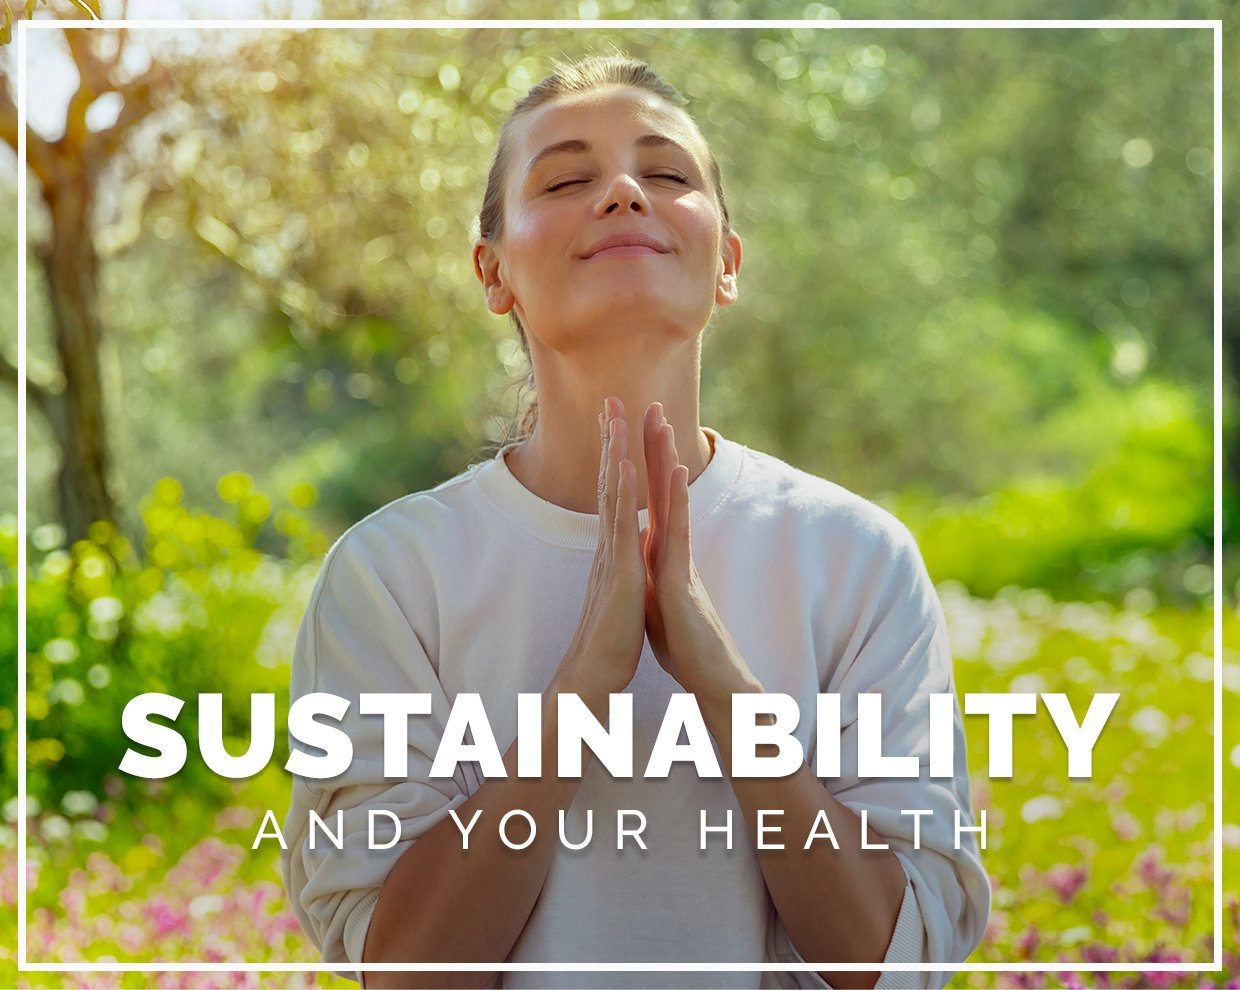 Why living sustainably makes you (and the planet) happier and healthier